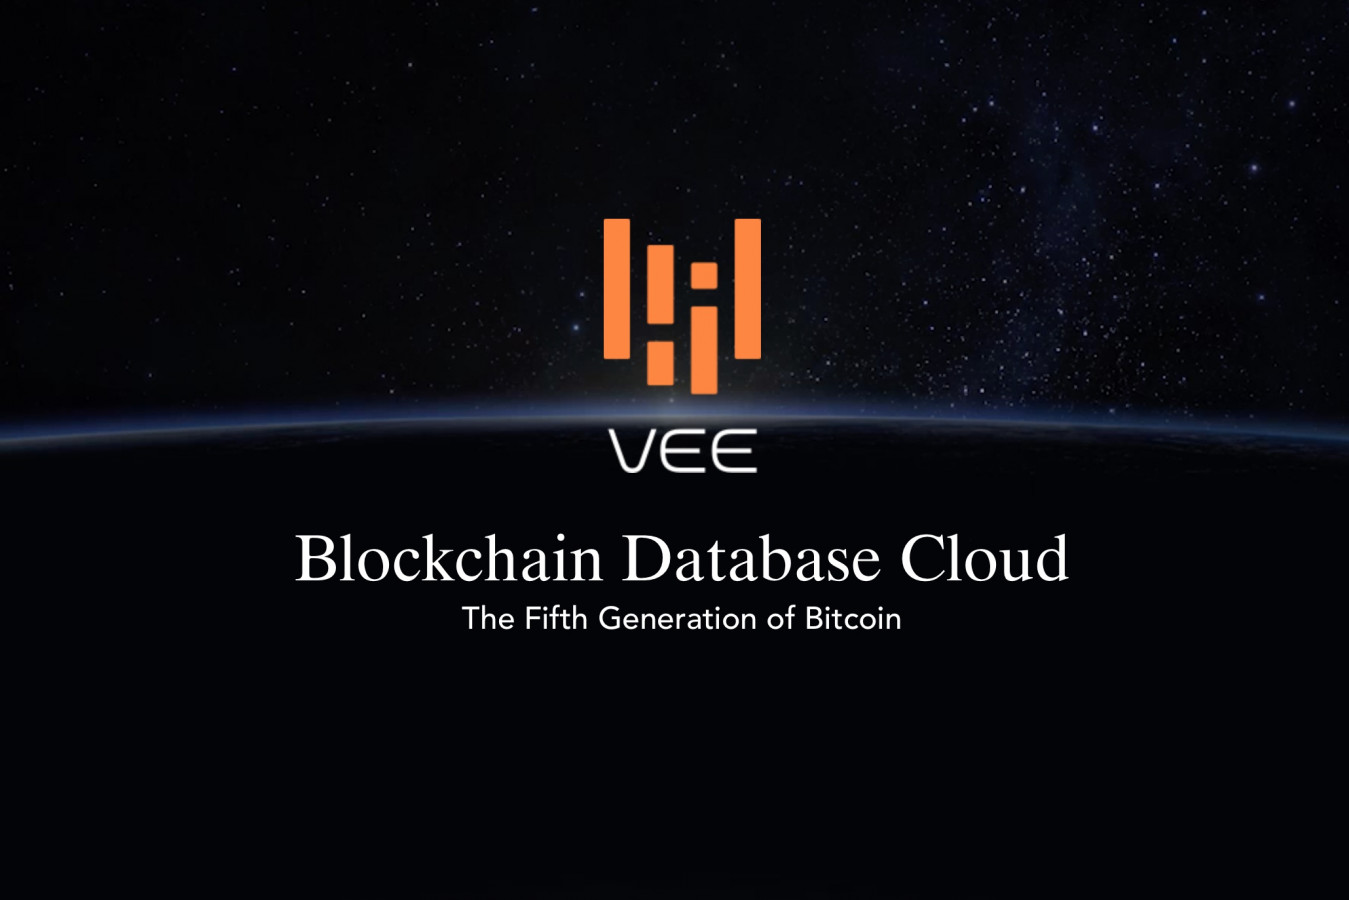 Project VEE